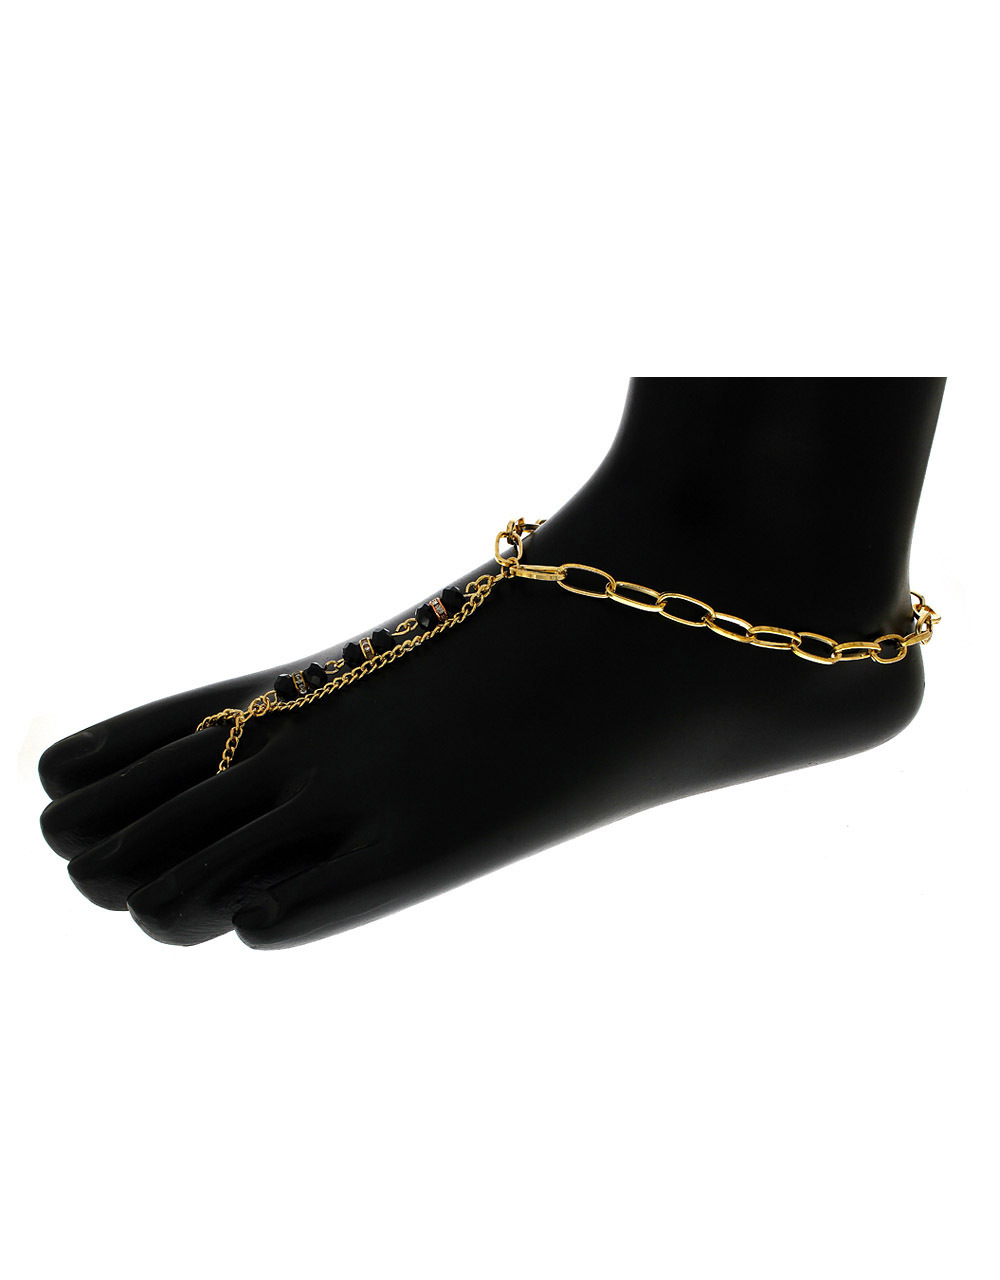 Black Colour Fancy Anklet Studded With Stones For Fashion